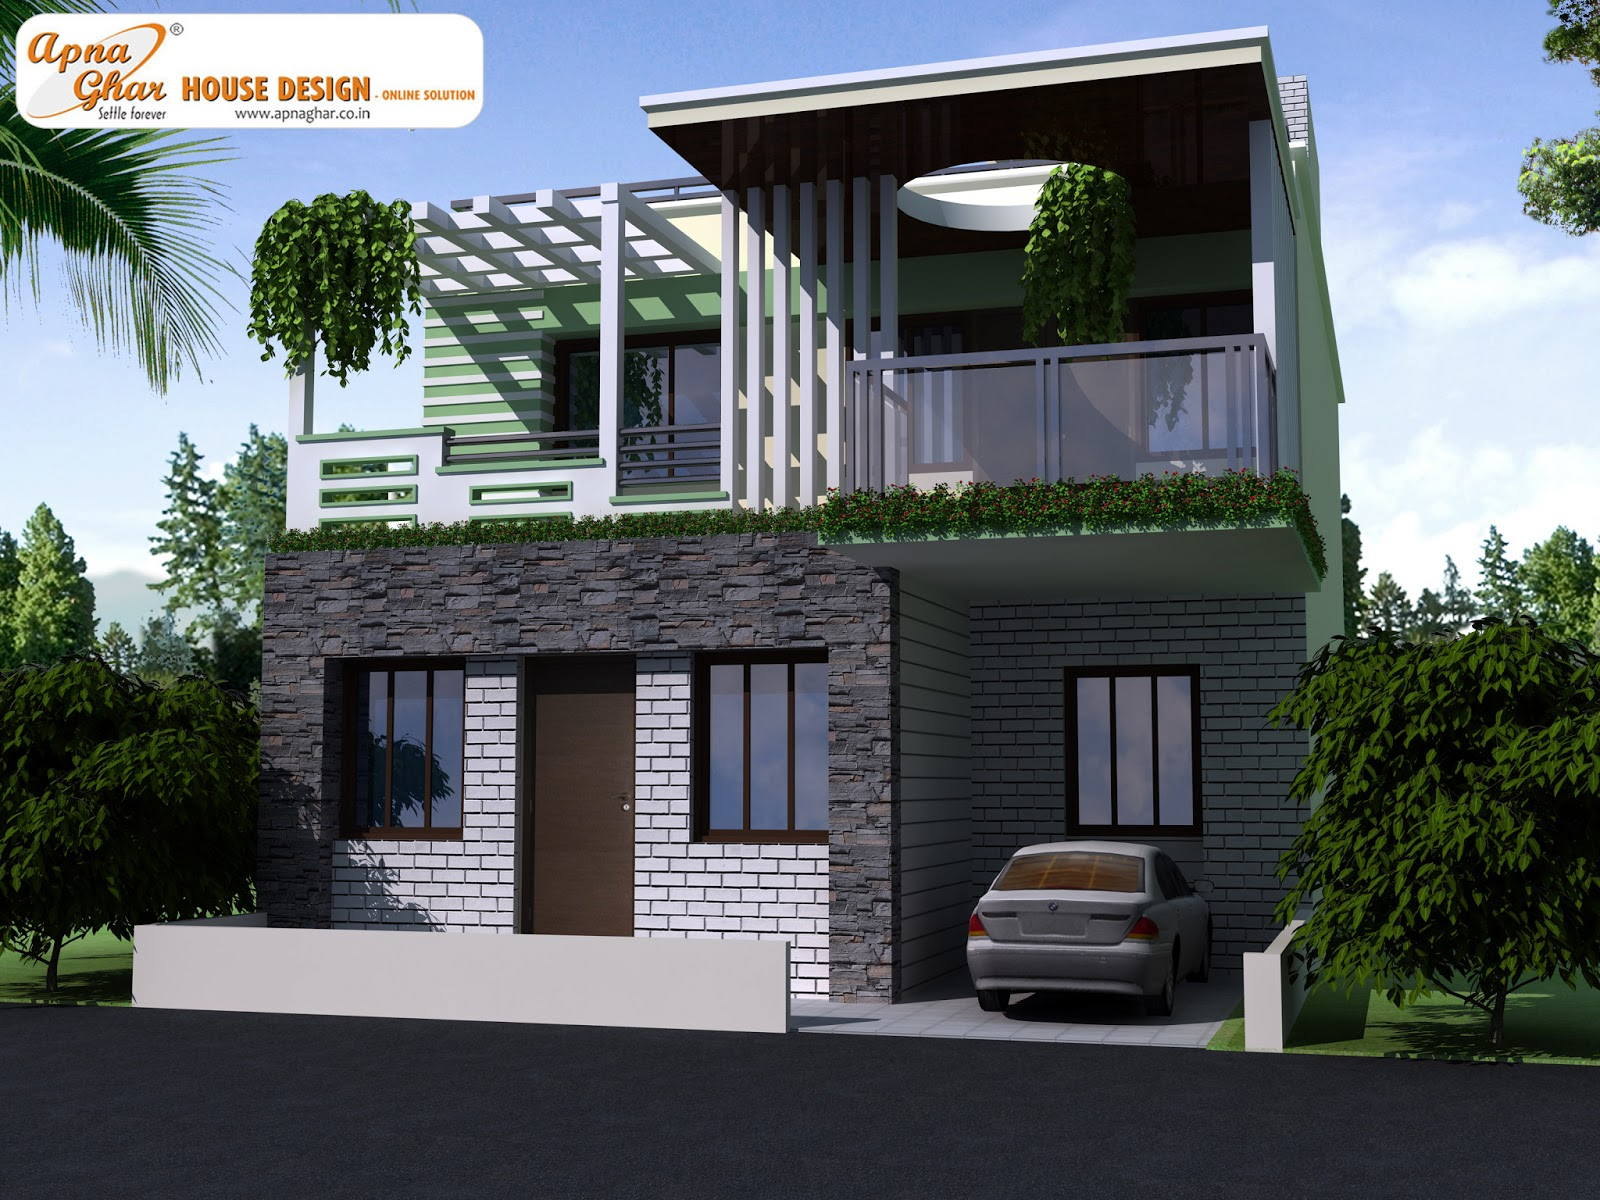 Decosee modern beautiful duplex house design for Building plans for duplex homes